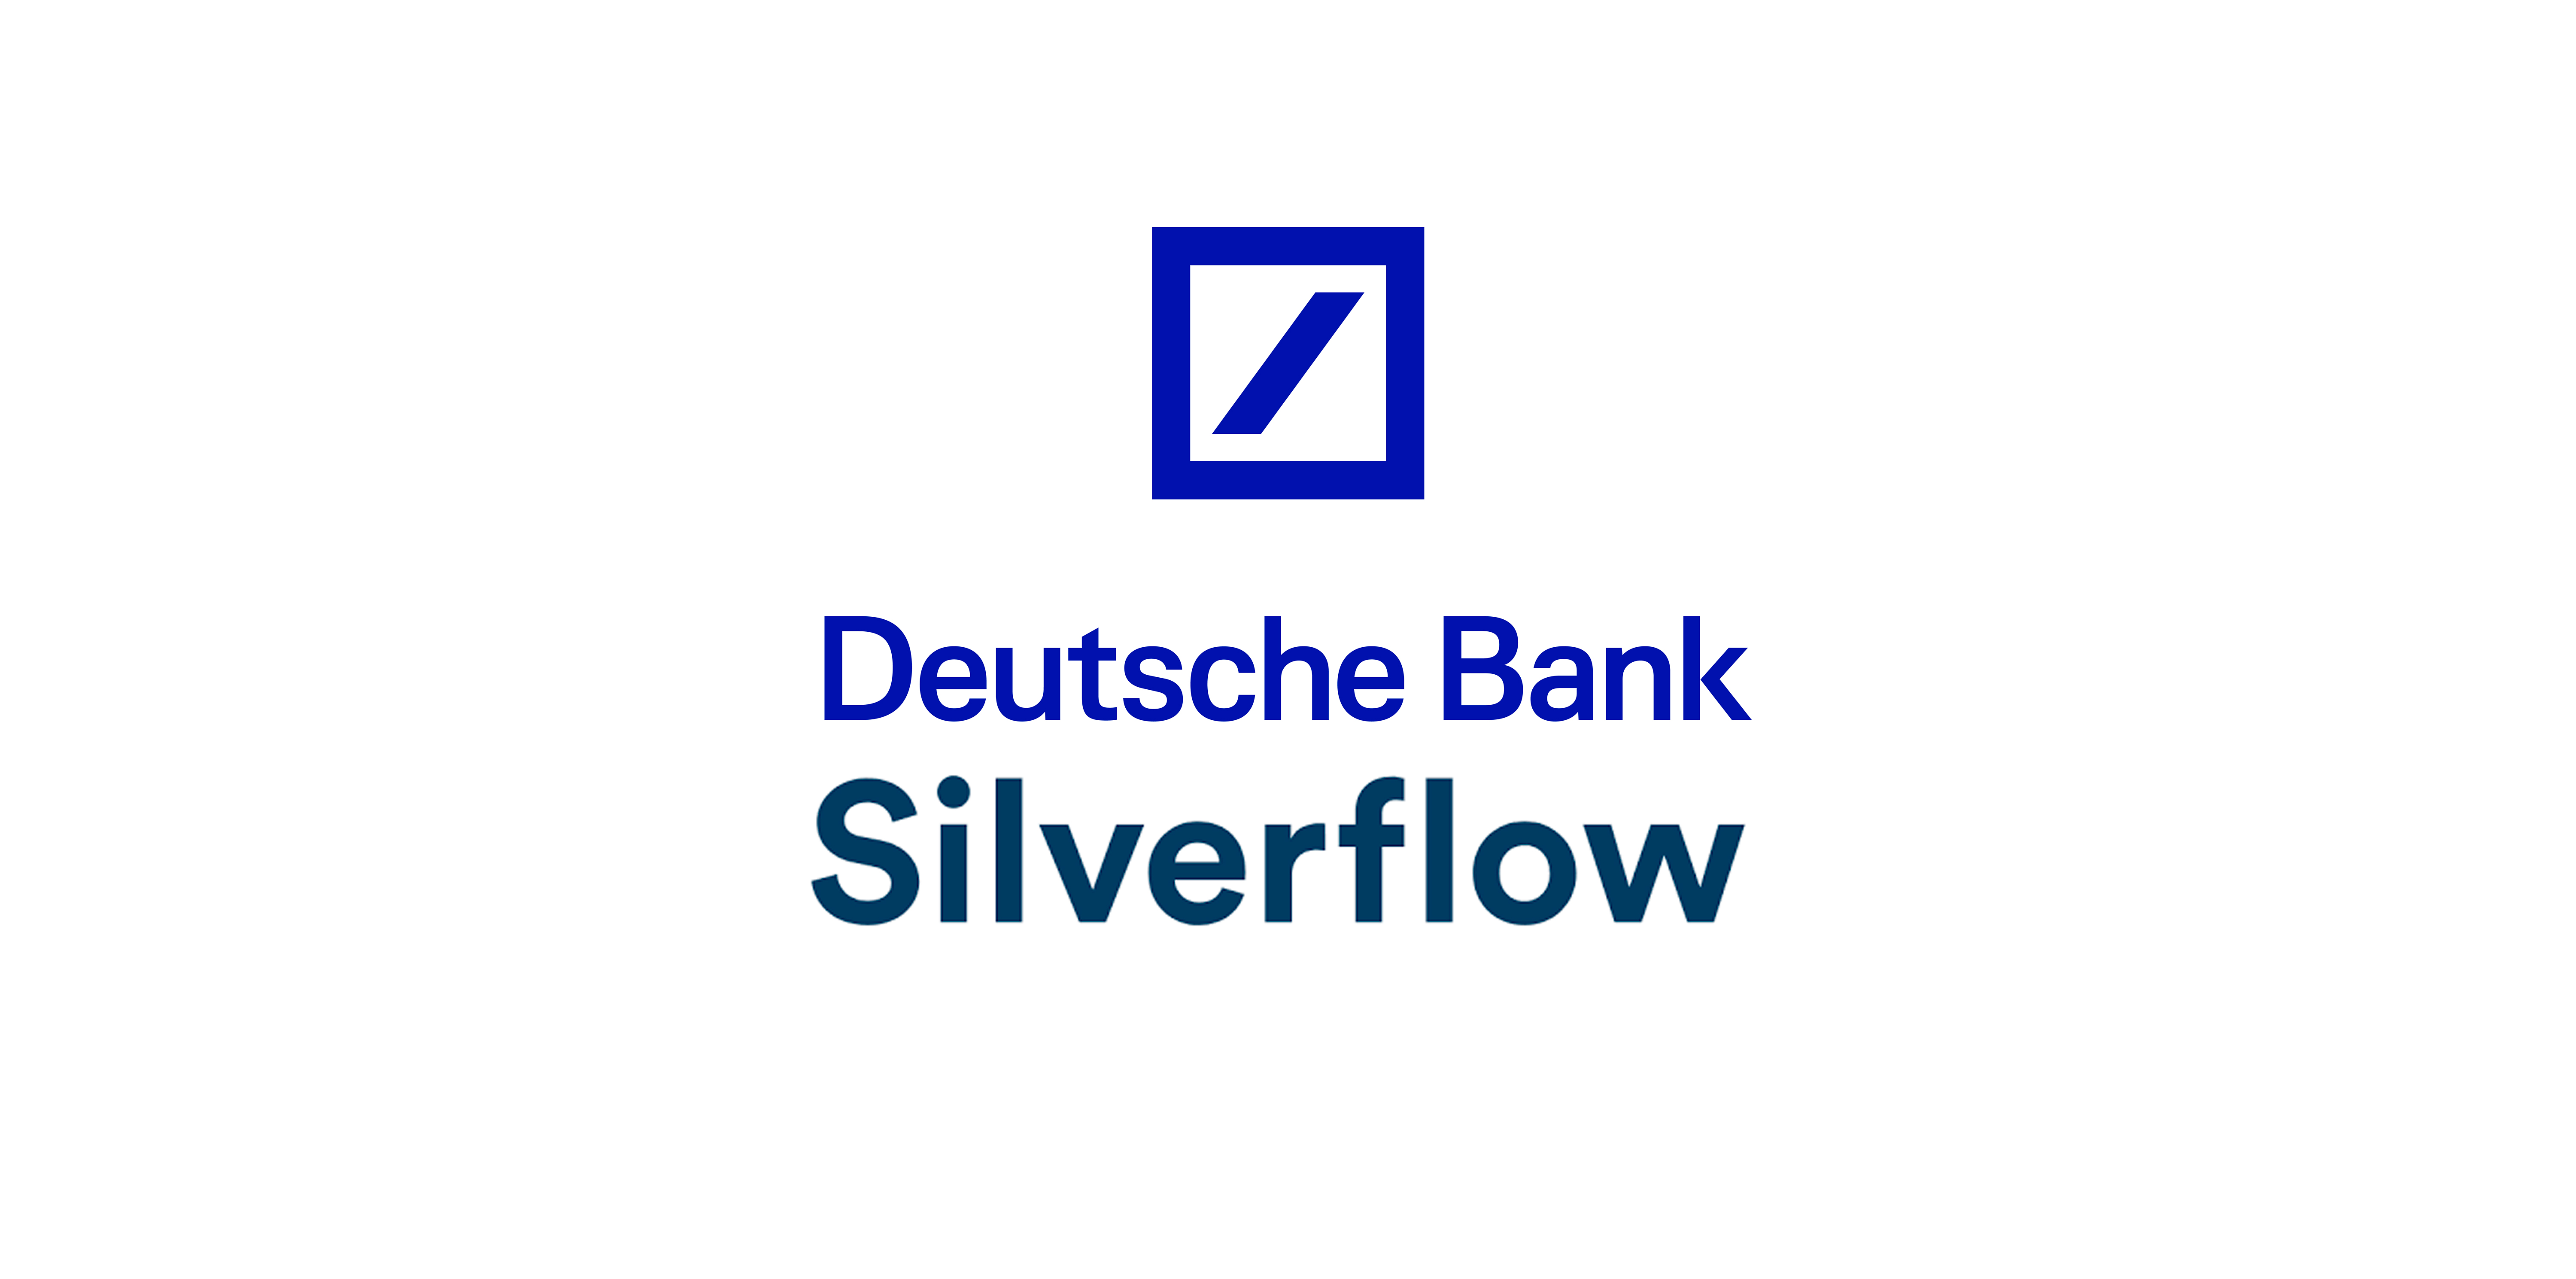 Deutsche Bank Signs Global Partnership with Payments Technology Provider Silverflow